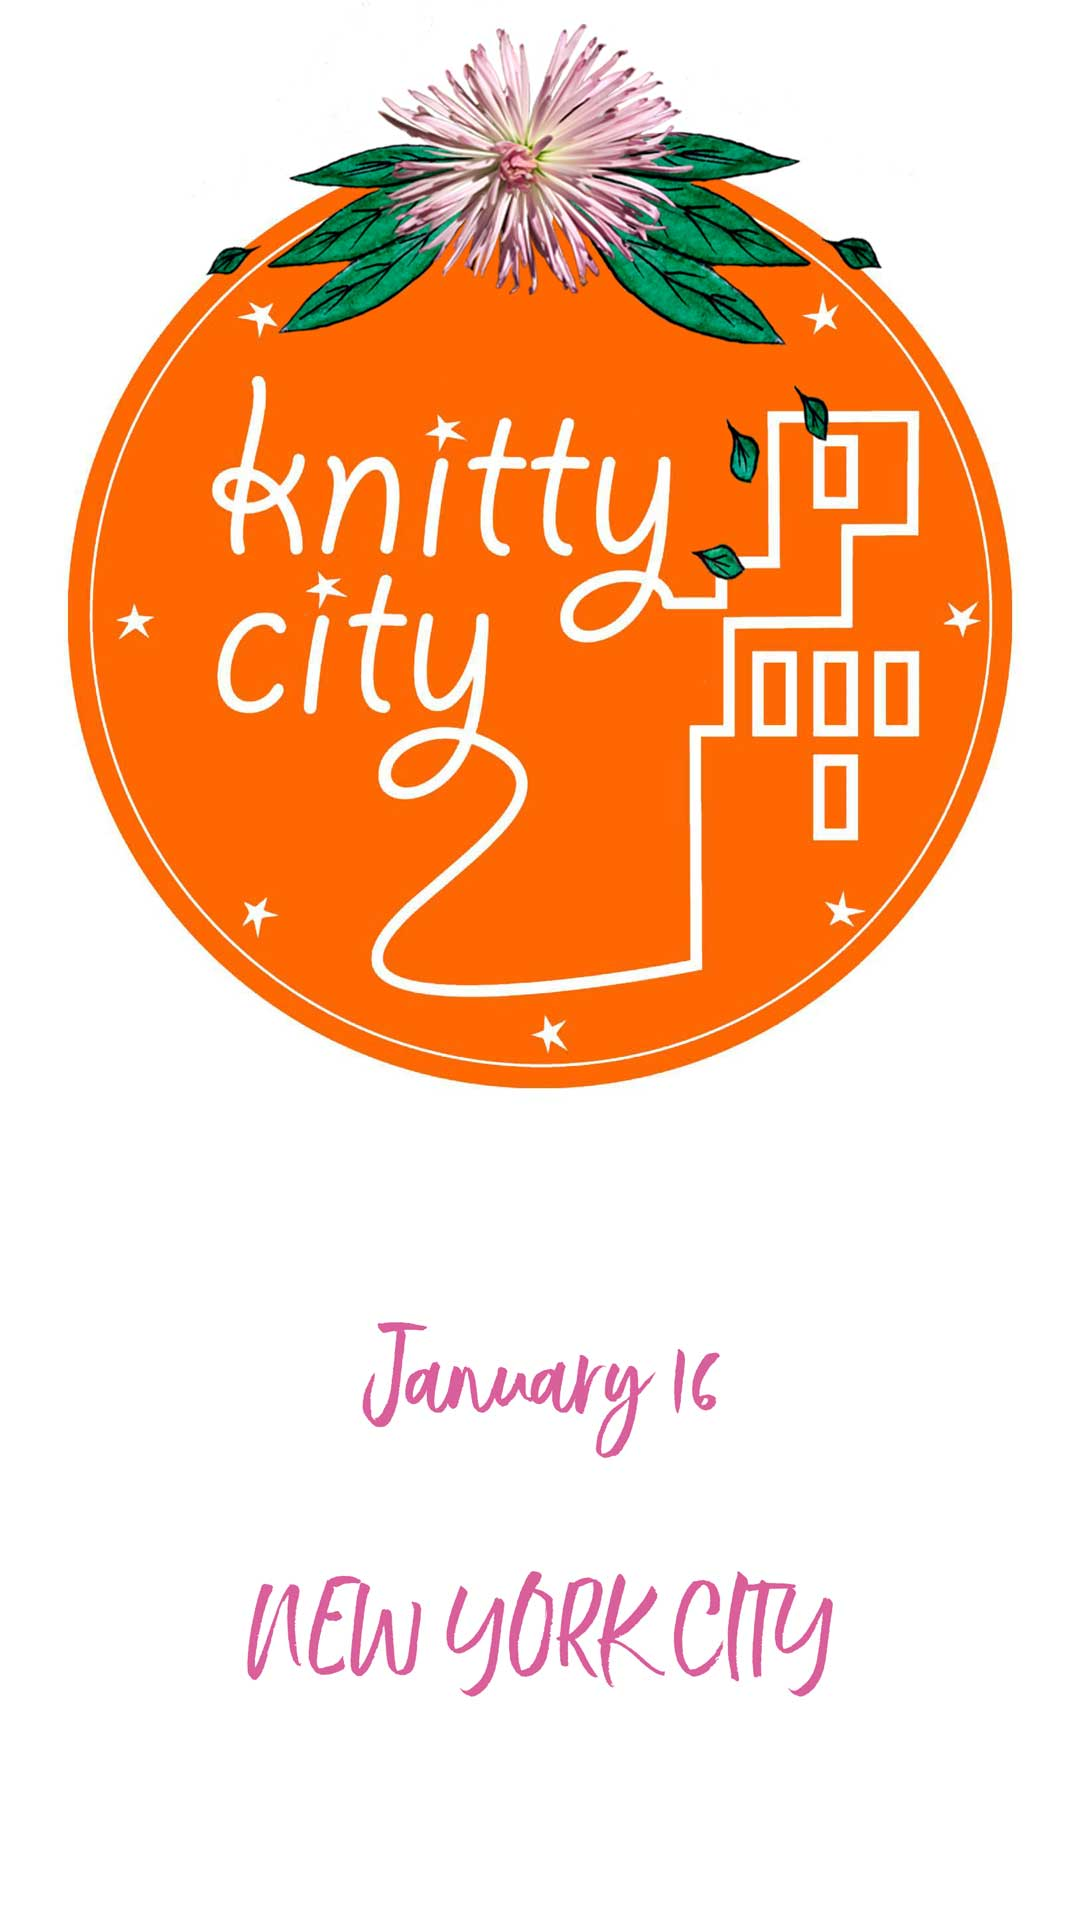 Knitty City NYC